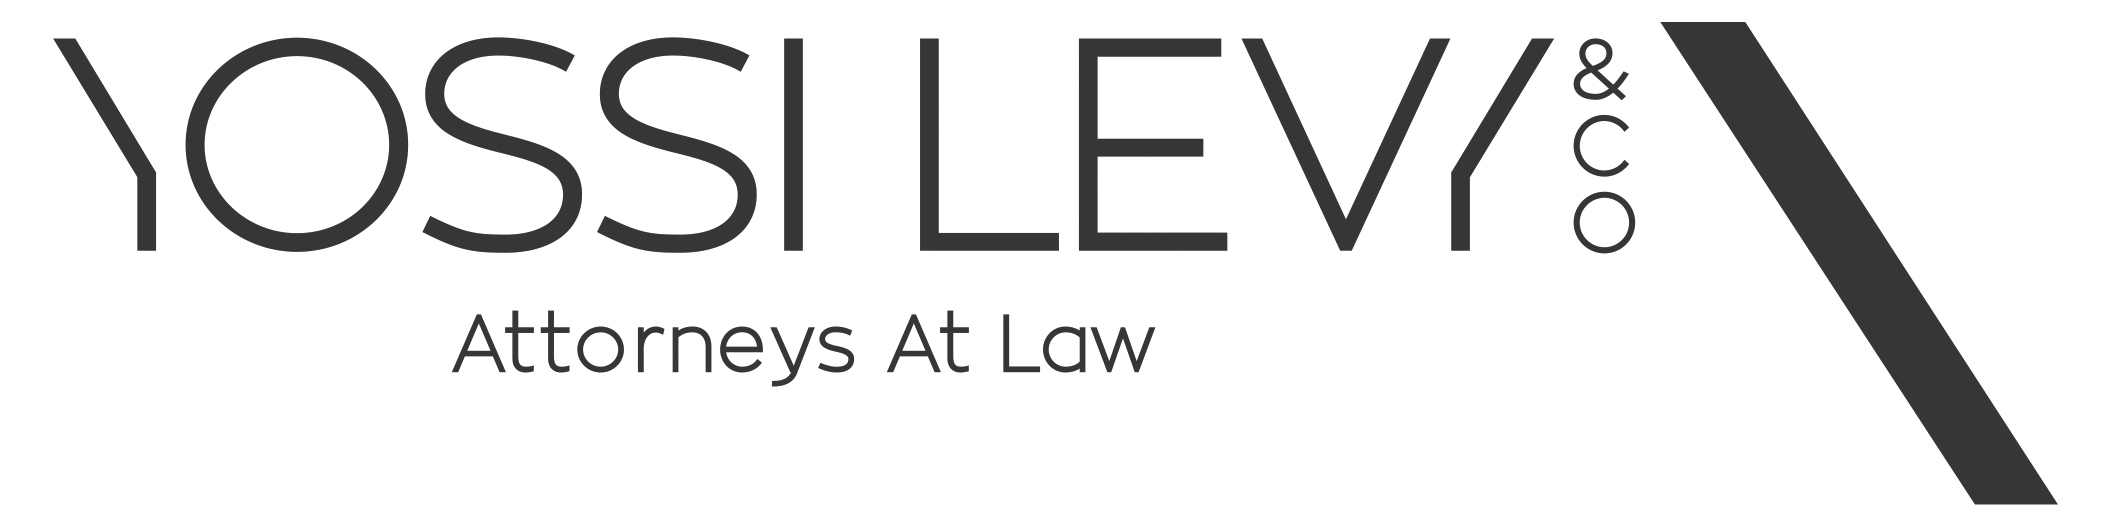 Yossi Levy & Co., Attorneys At Law